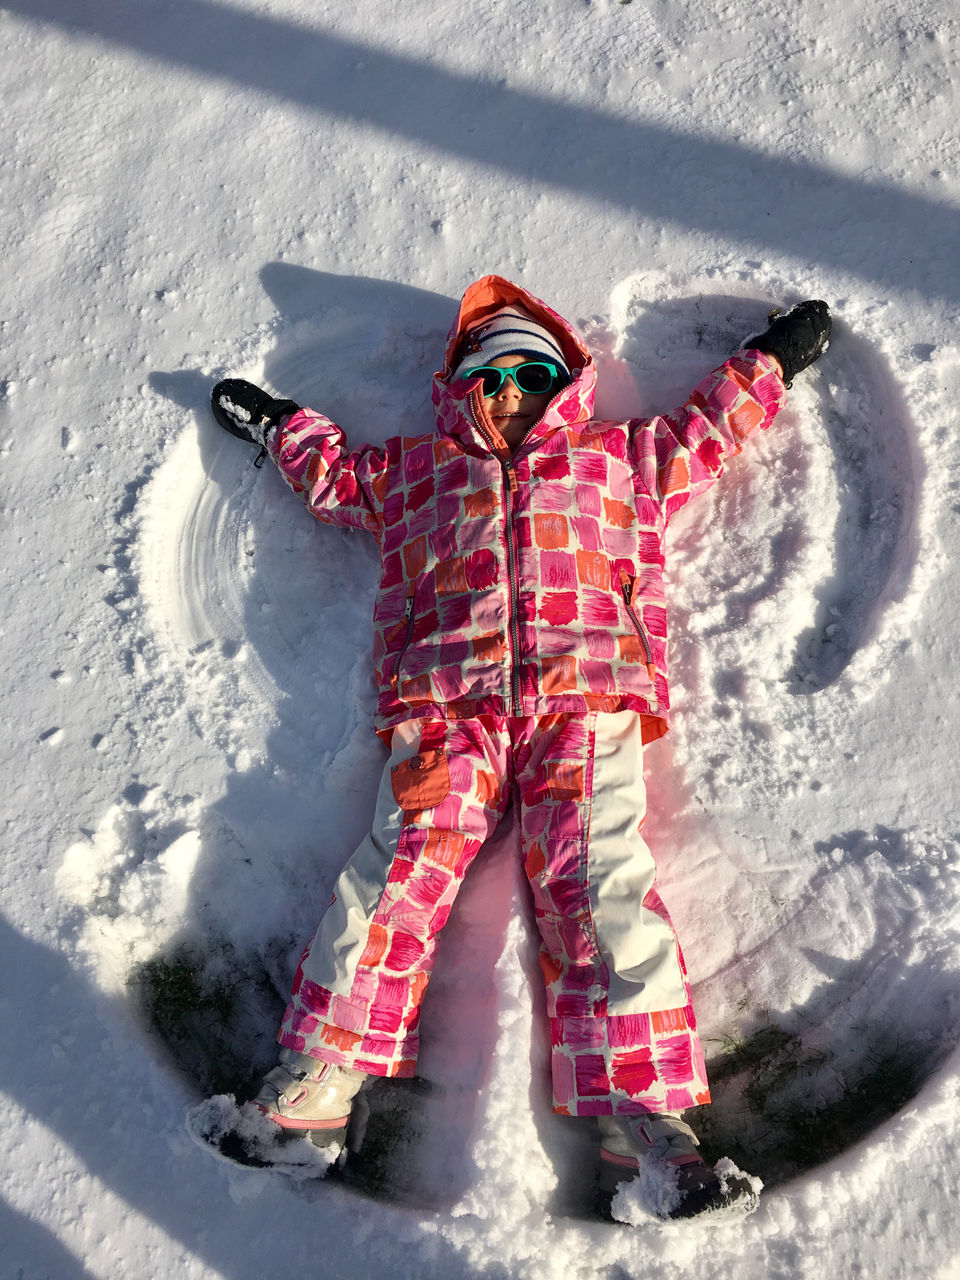 12 ways to wear out your kids' crazy on a Northeast Ohio snow day